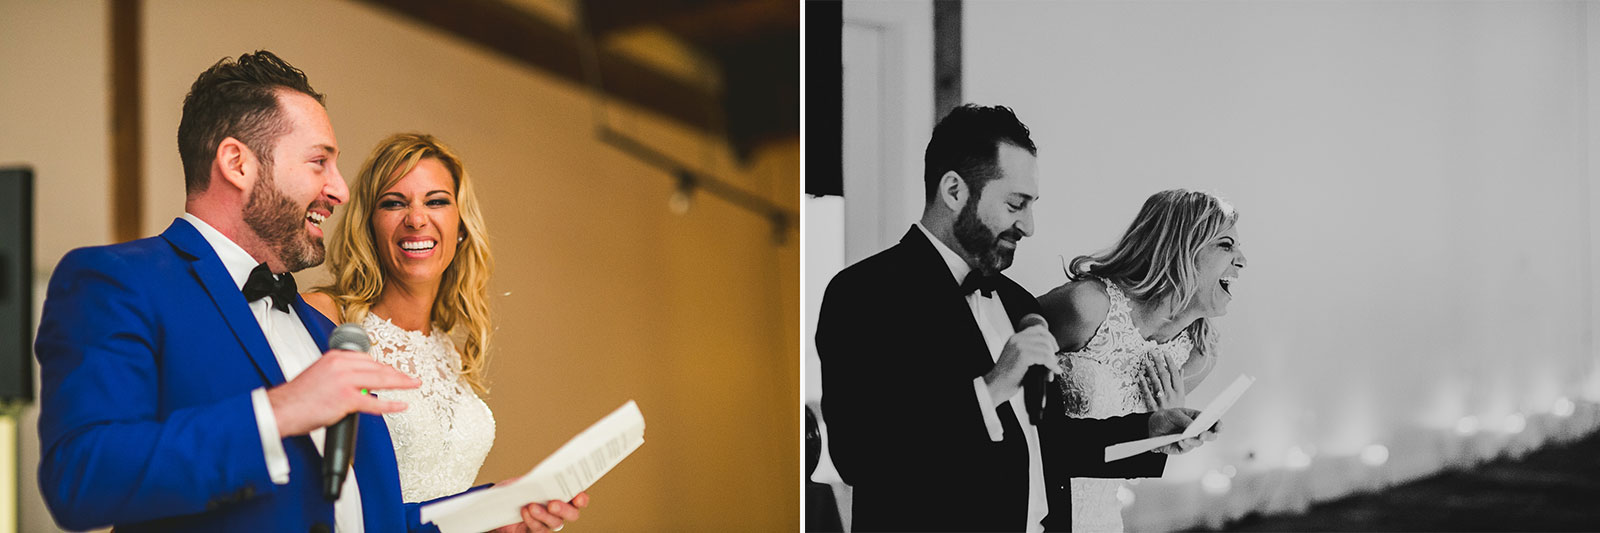 68 how to photograph speeches at wedding - Chicago Wedding Photography at Gallery 1028 // Courtnie + David